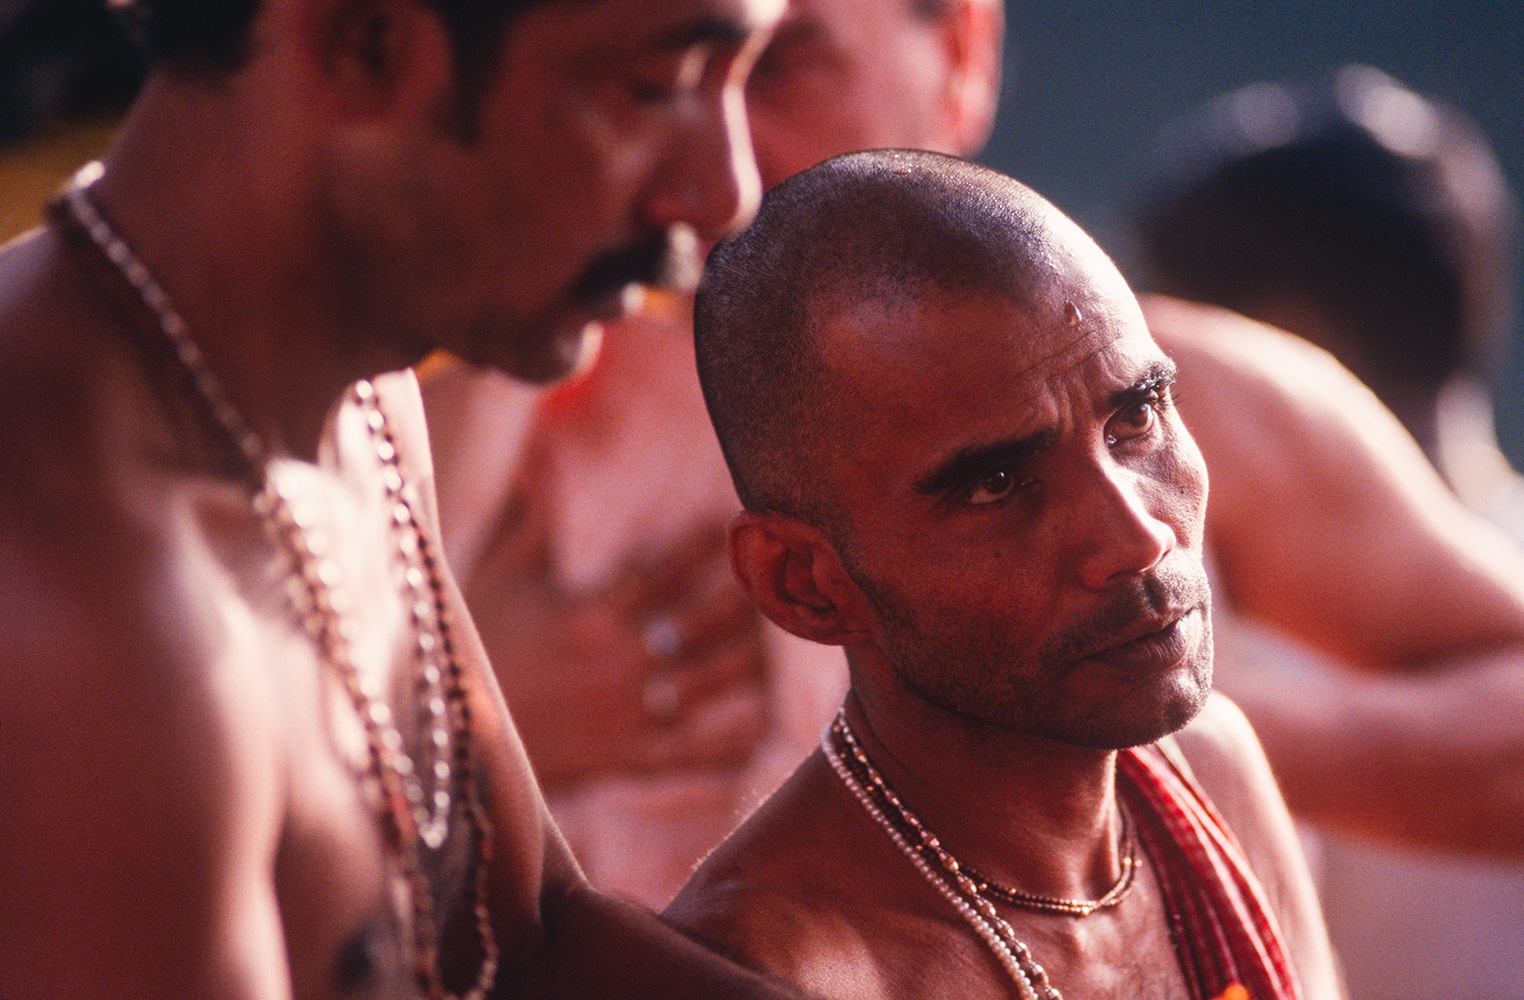 Blessing before ritual bathing in the Ganges